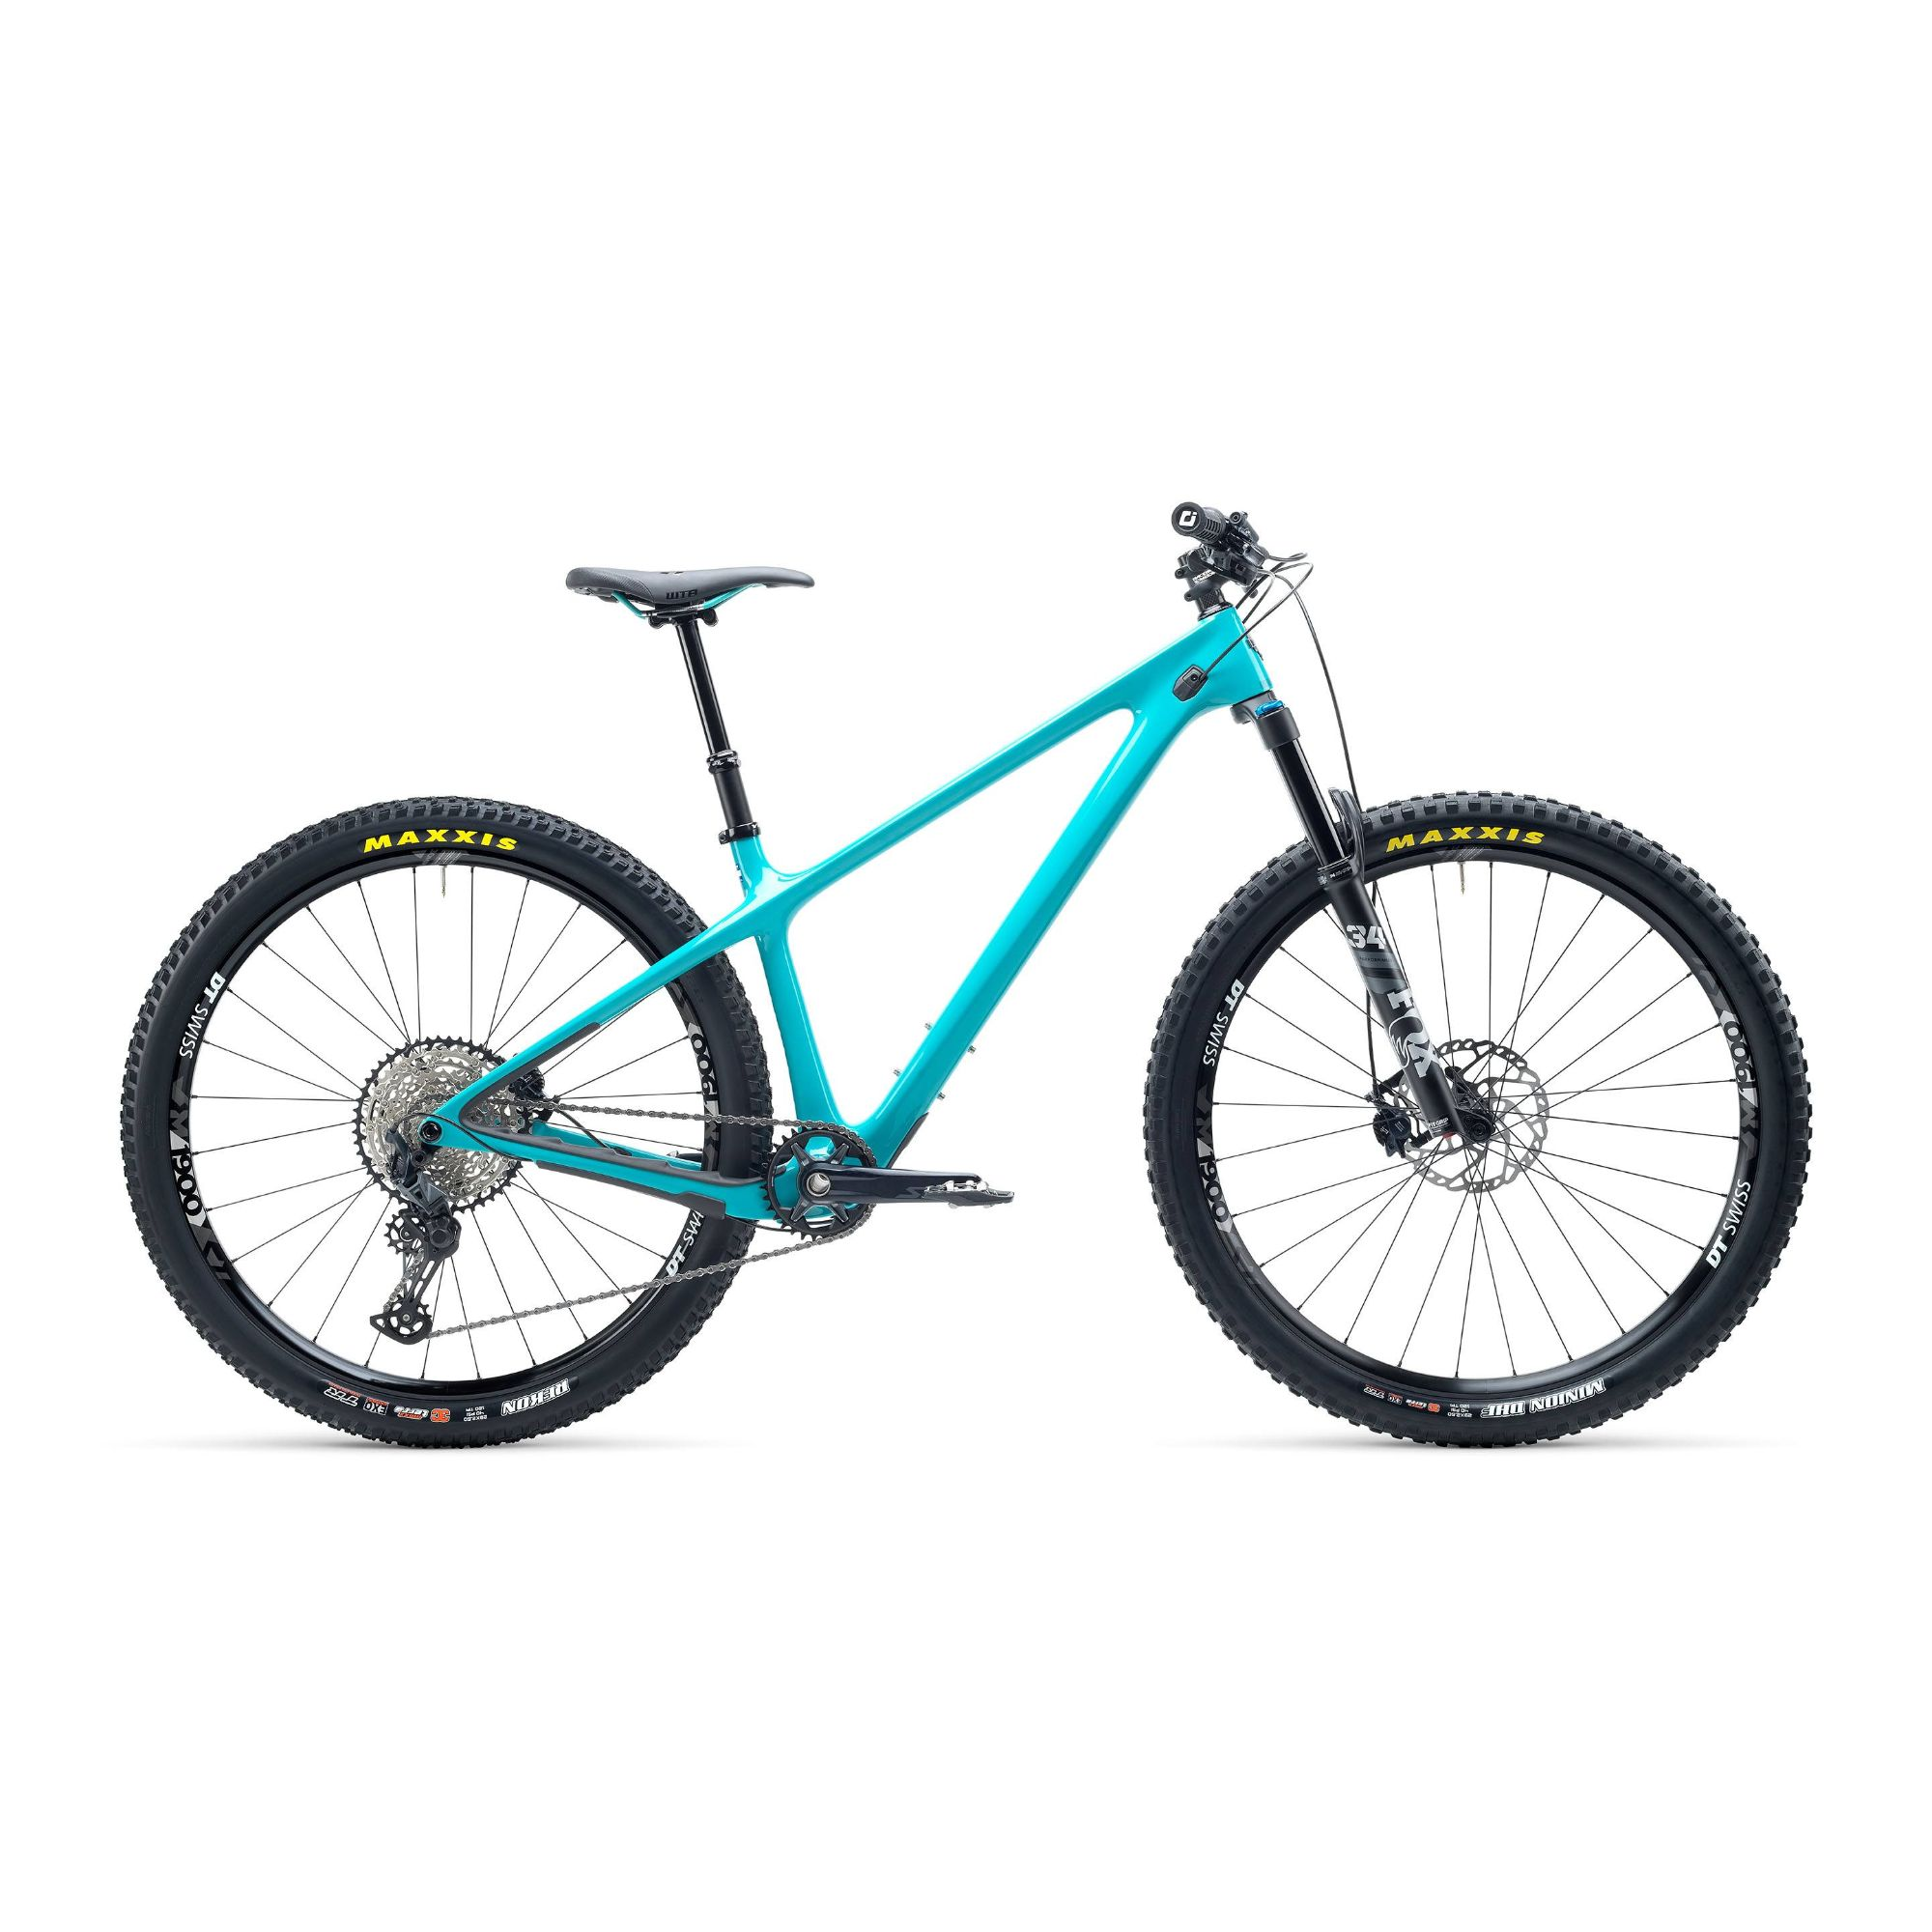 Yeti ARC C-Series C1 29er Shimano SLX Mountain Bike 2021 Turquoise